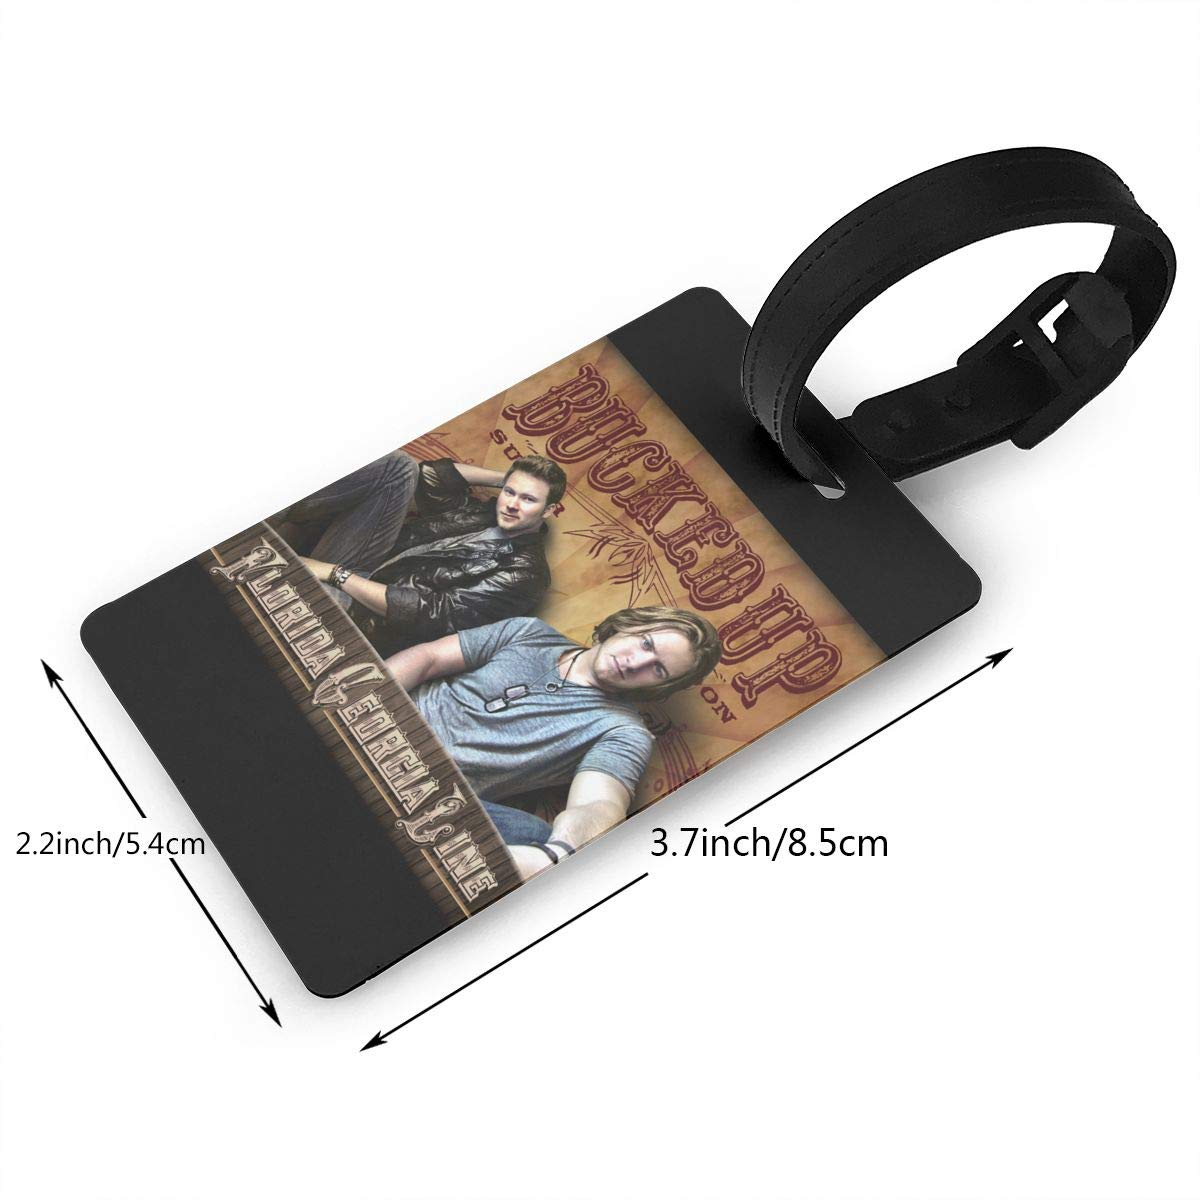 Hushuxiapp Florida Georgia Line Complete Printed Design PVC Luggage Tag Travel Suitcase ID Labels Accessories Leather Wristband